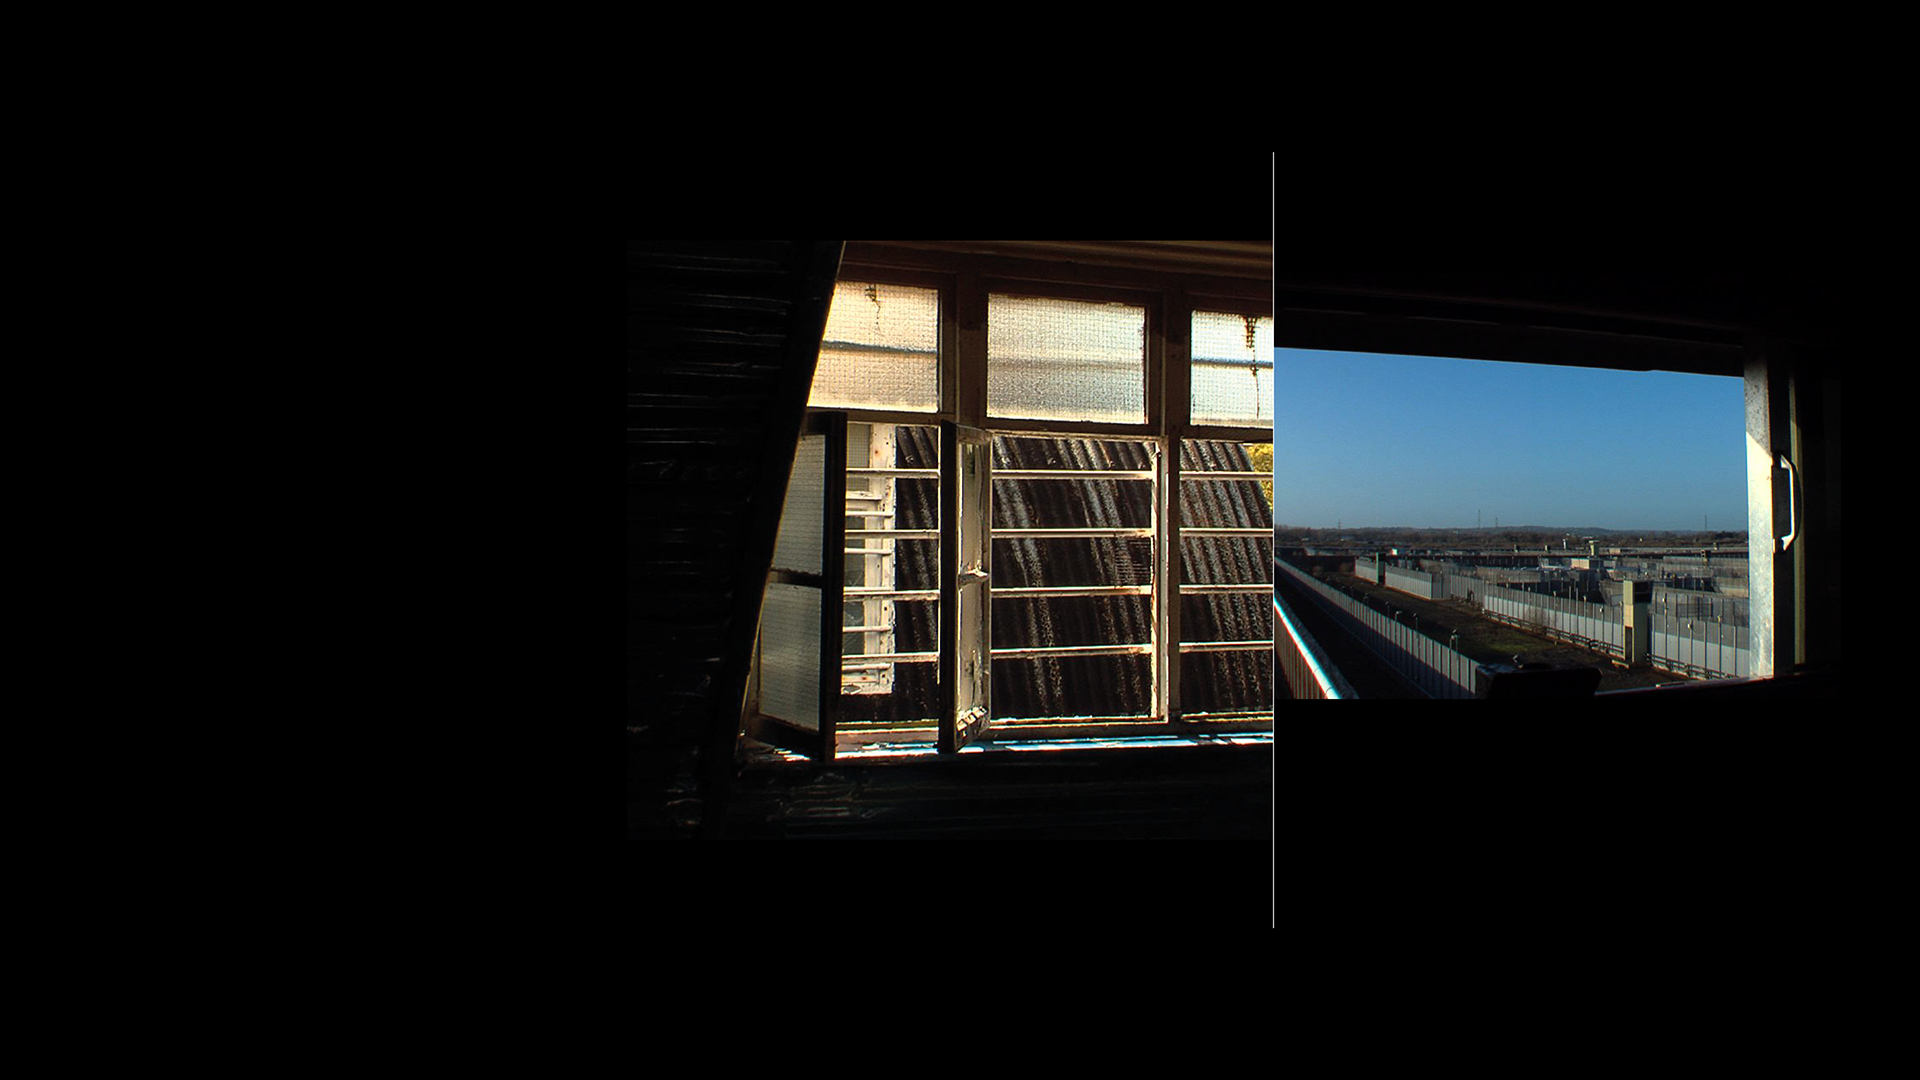 Views of the prison from windows.